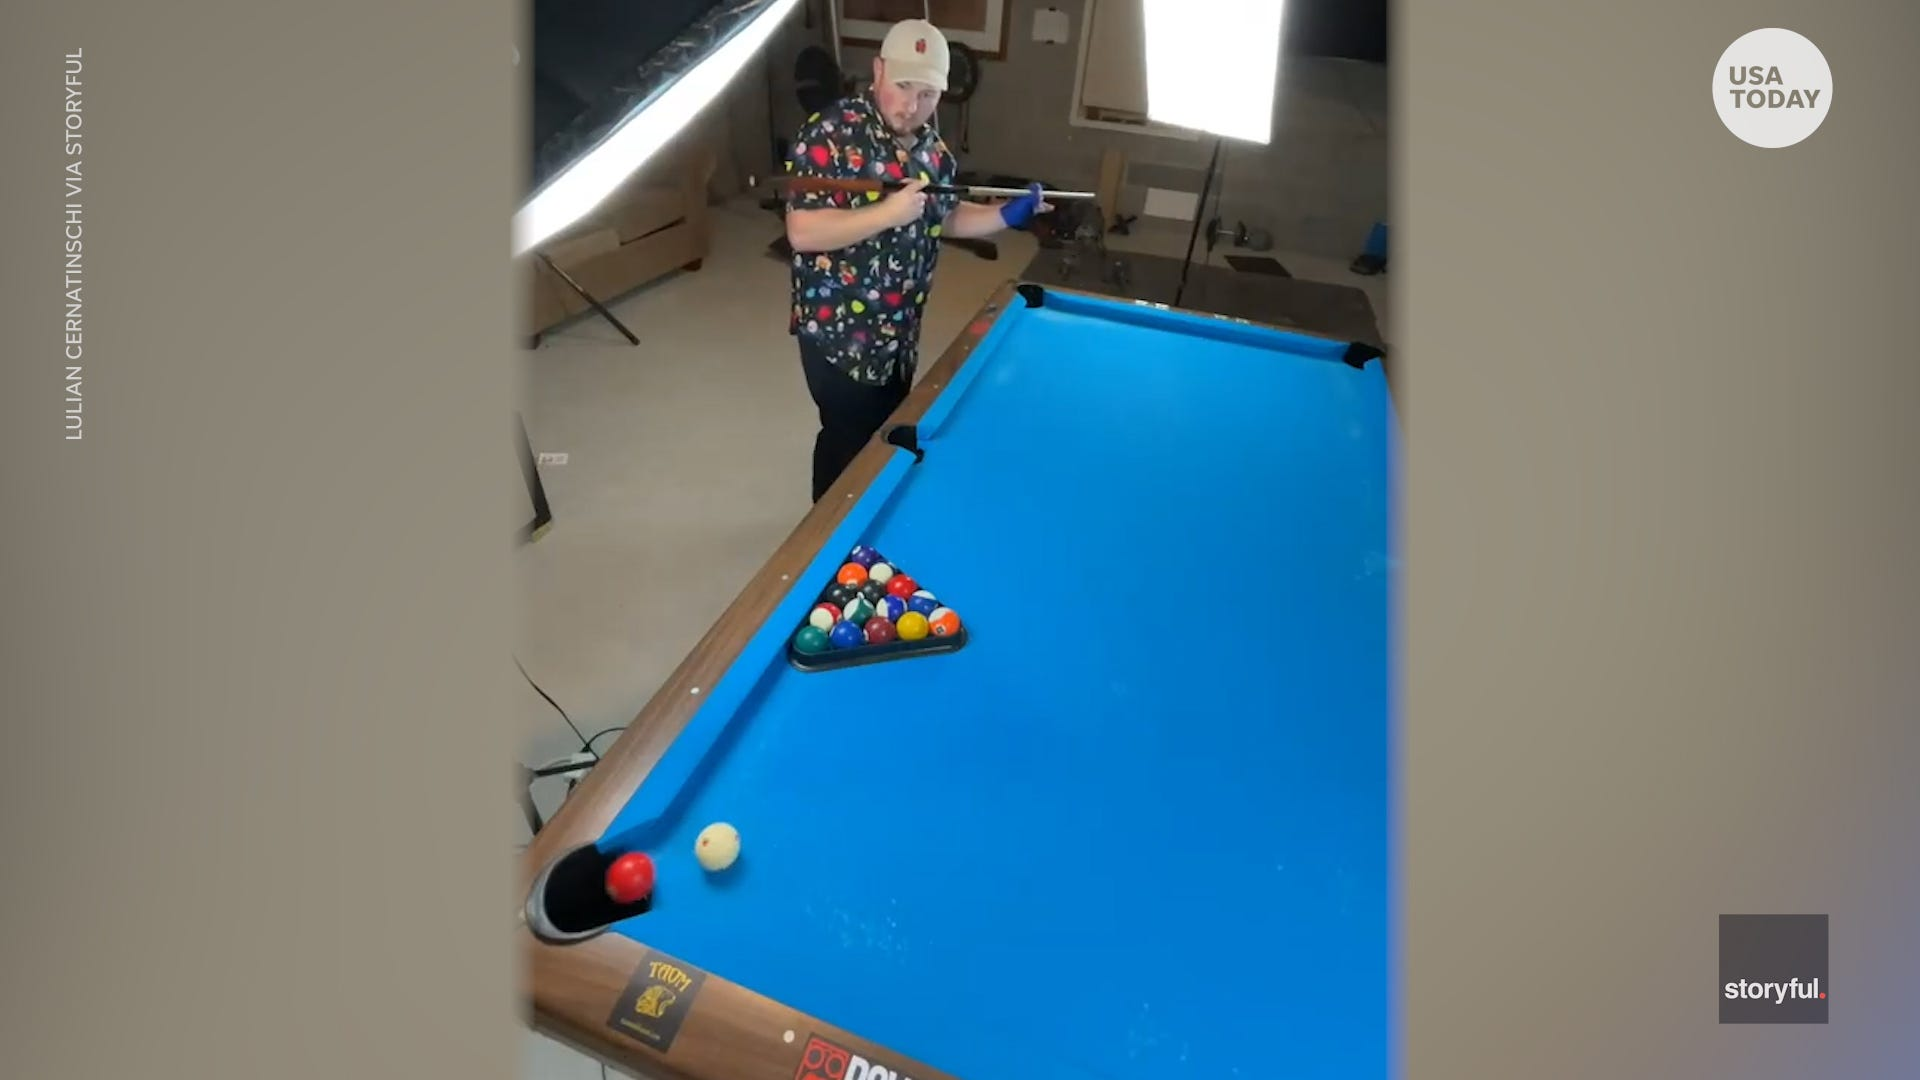 This pool player shows off his impressive billiard skills with insane trick shots